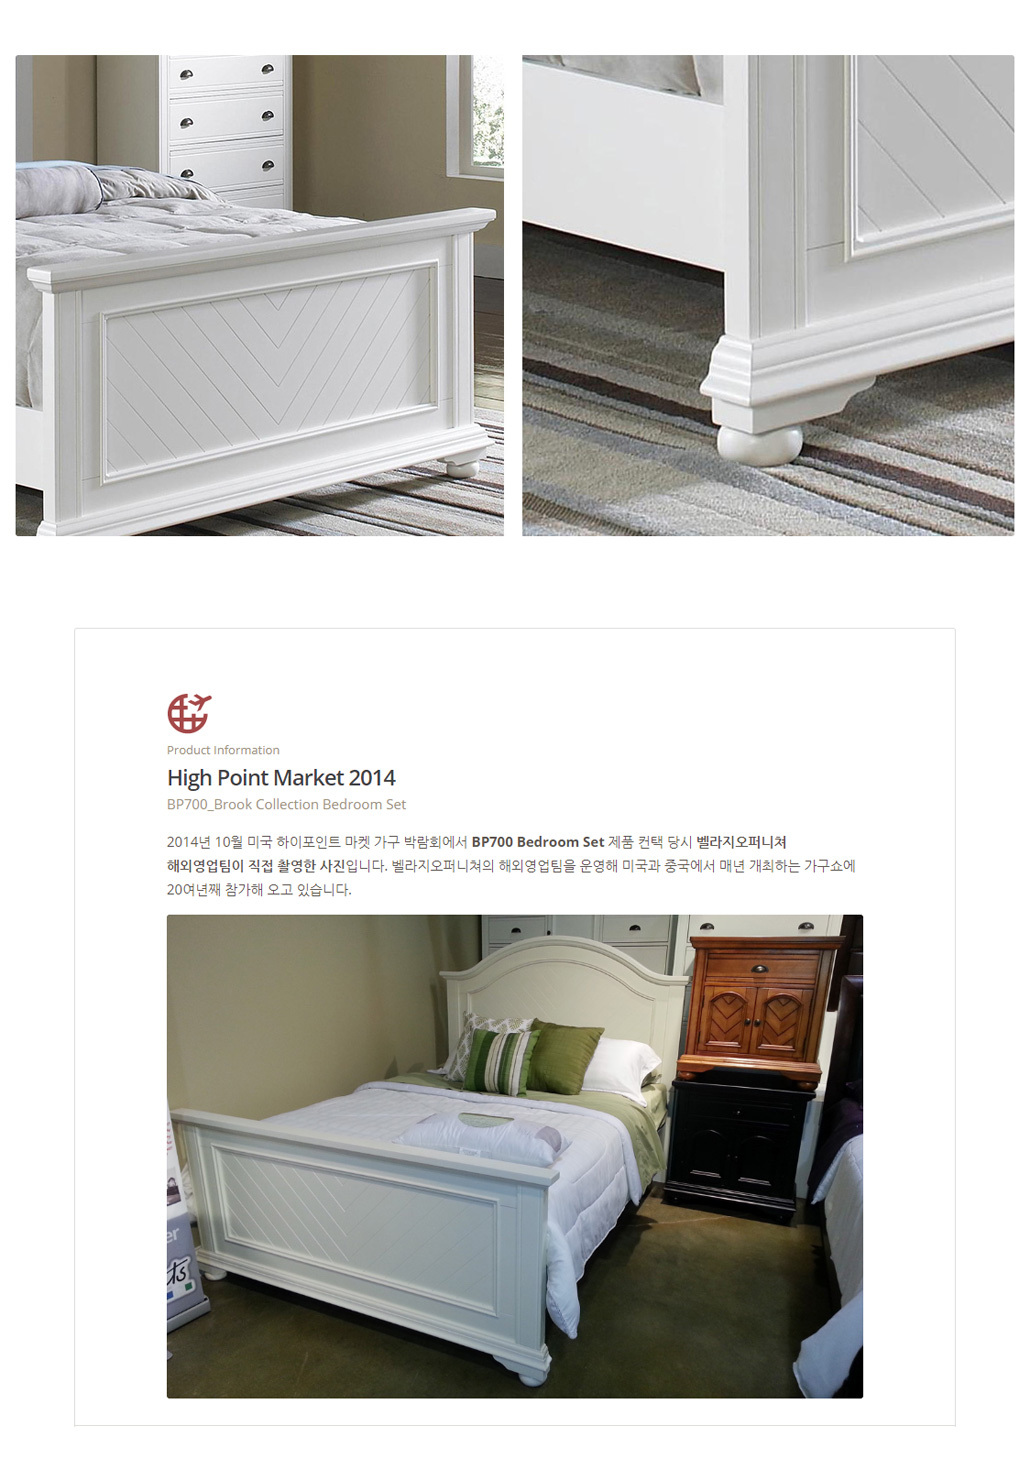 bp700_brook_collection_bed_03.jpg